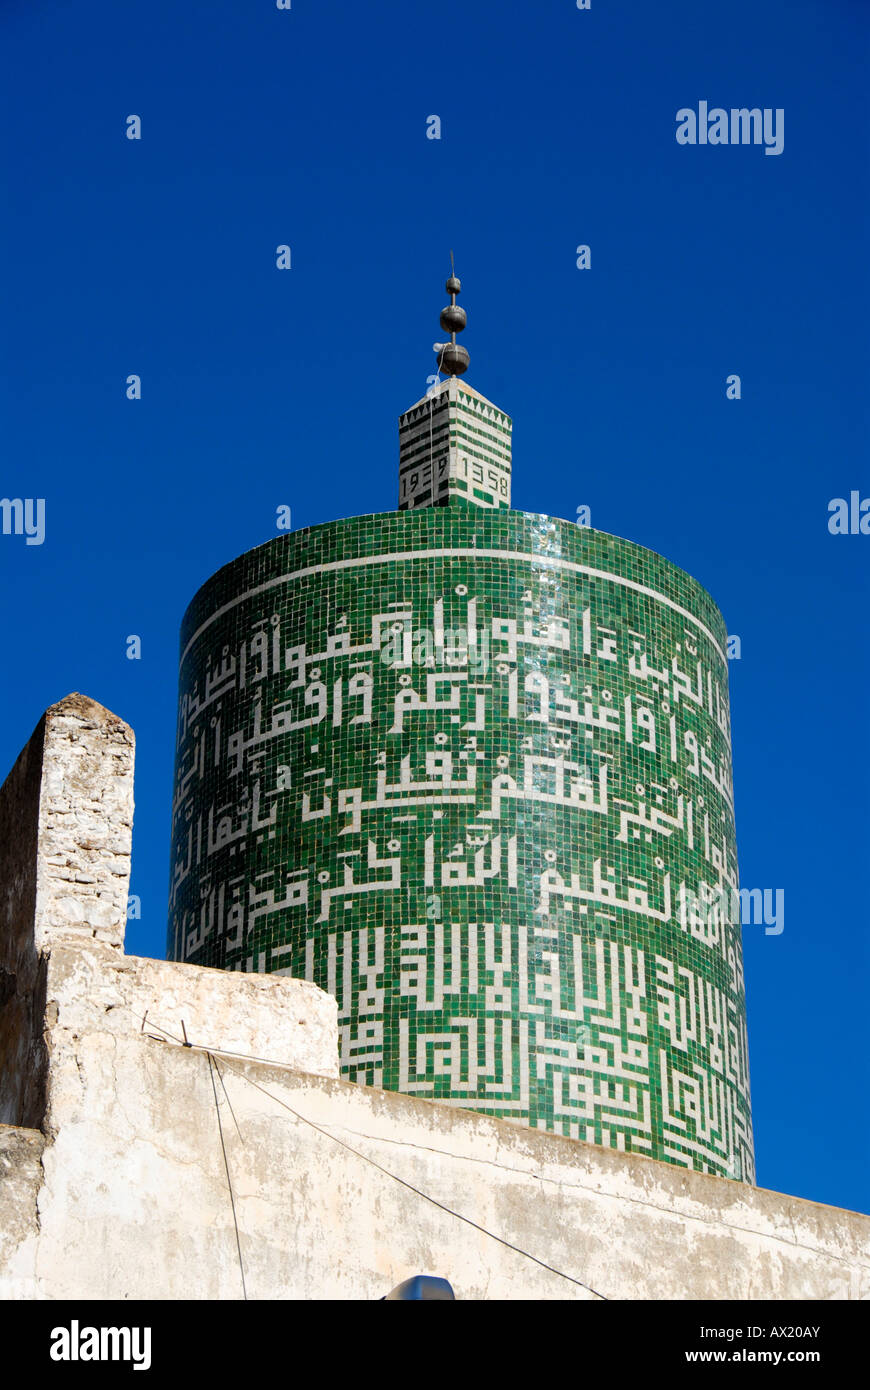 Green round minaret decorated with Arabic script islamic place of pilgrimage Moulay-Idriss Morocco - Stock Image